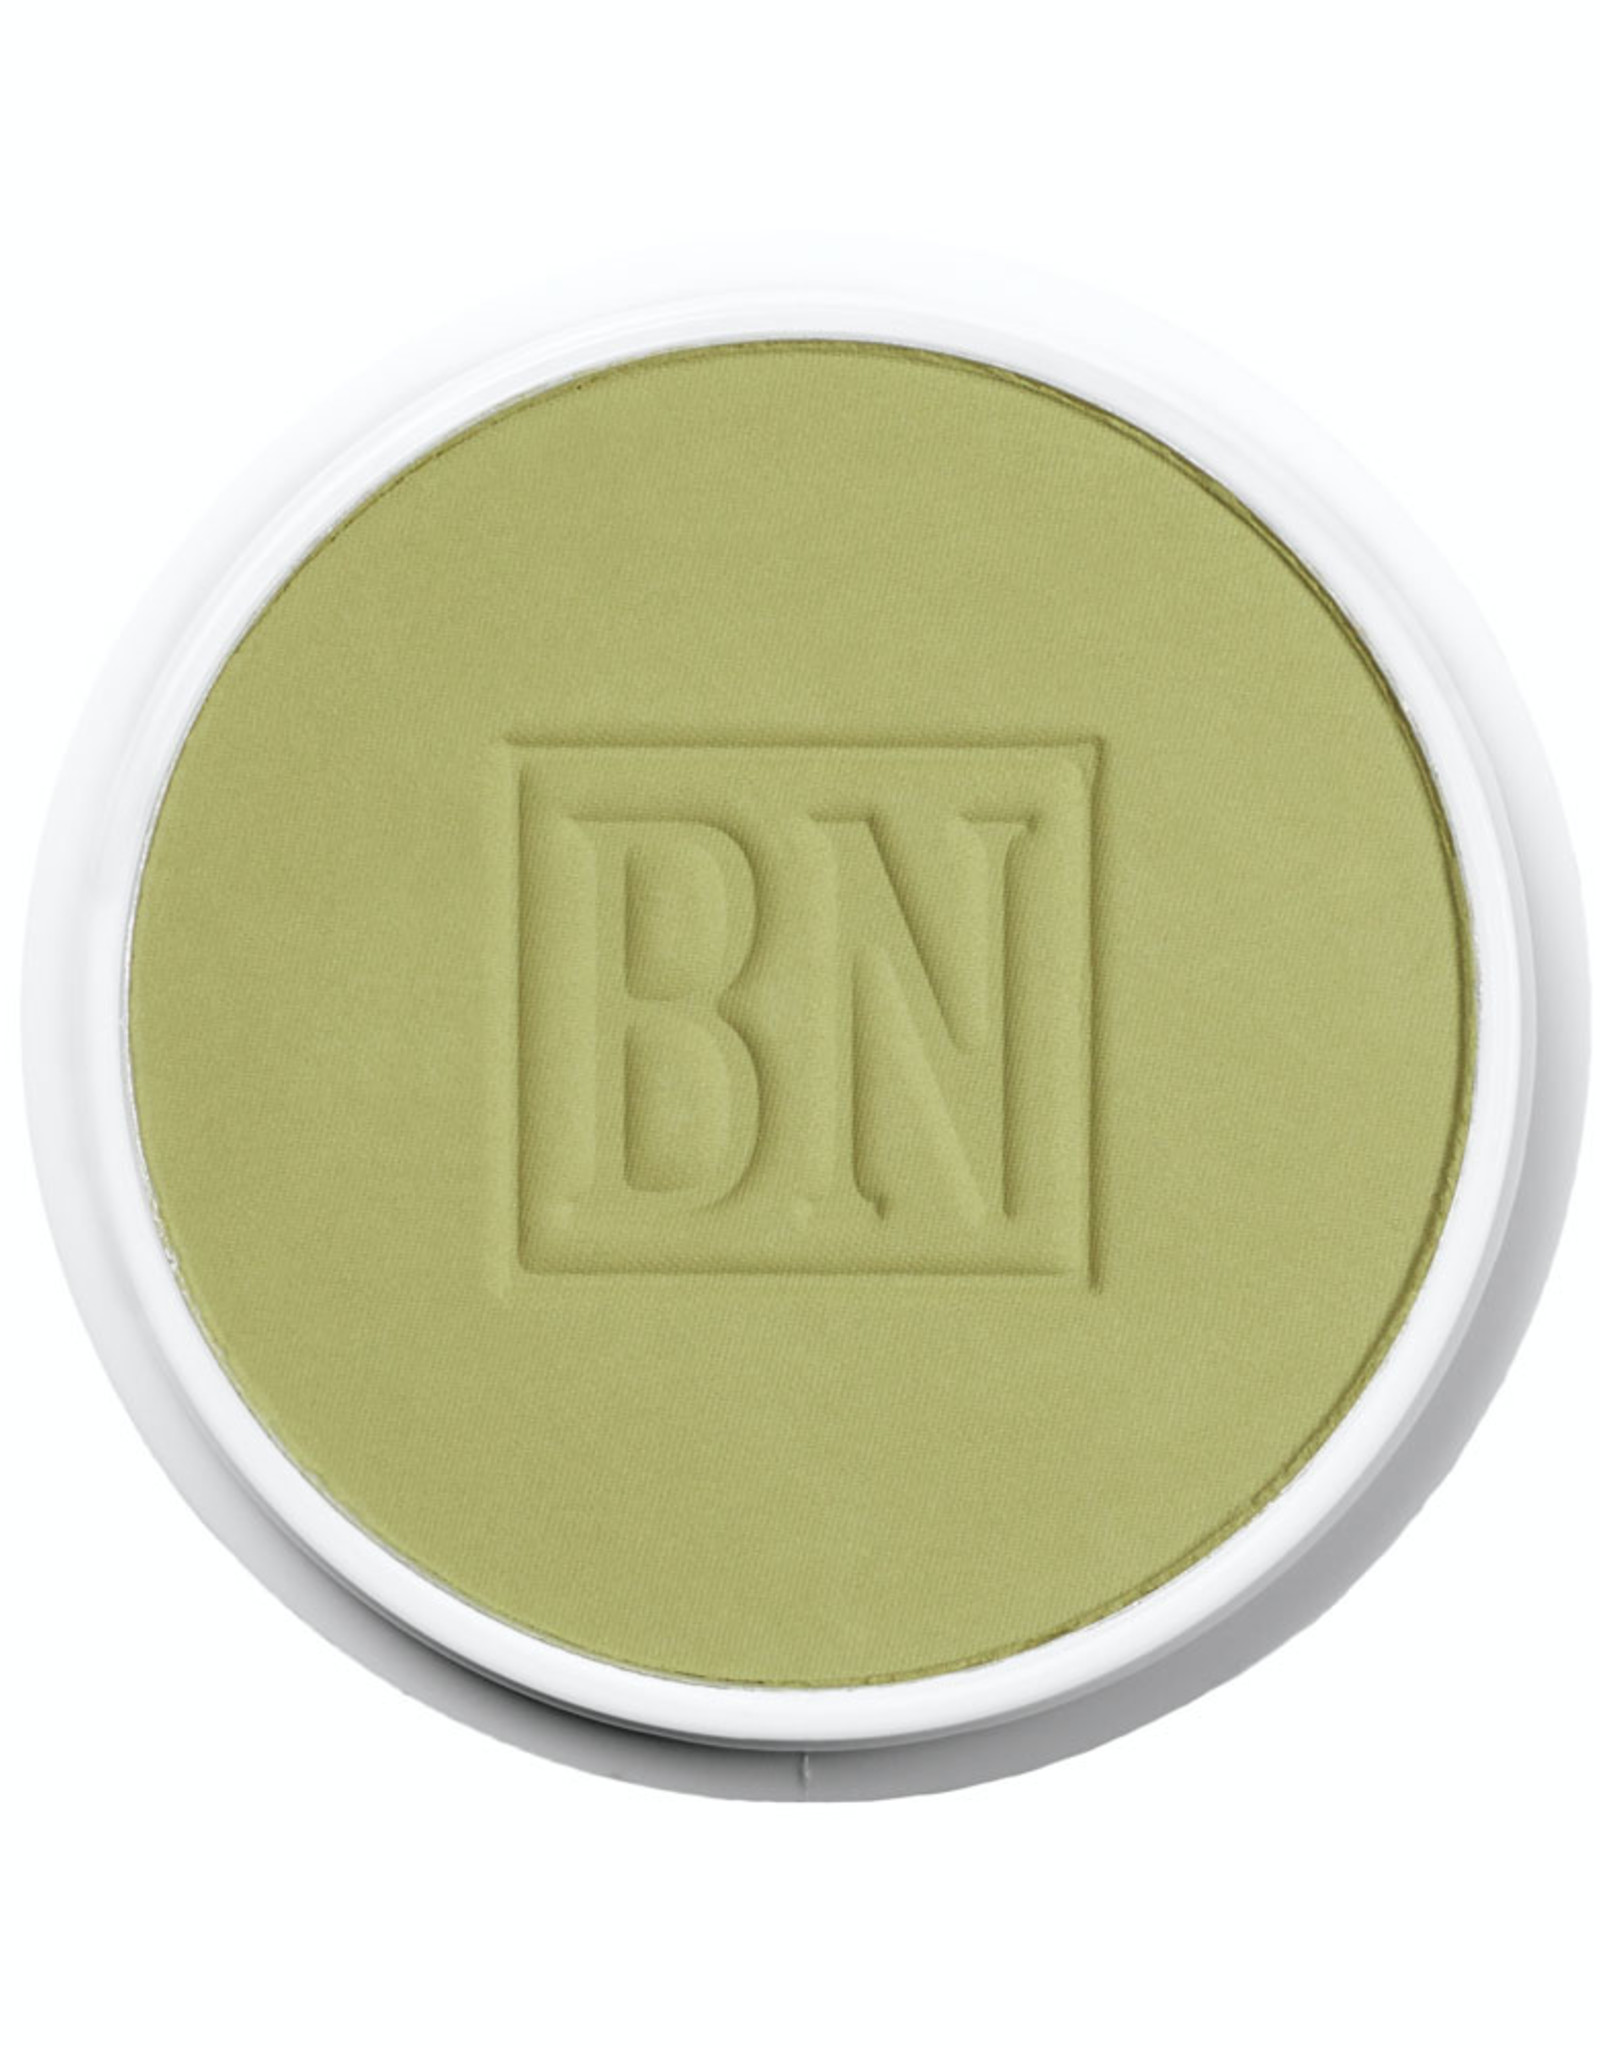 Ben Nye FOUNDATION-CAKE, SALLOW GRN, 1 OZ